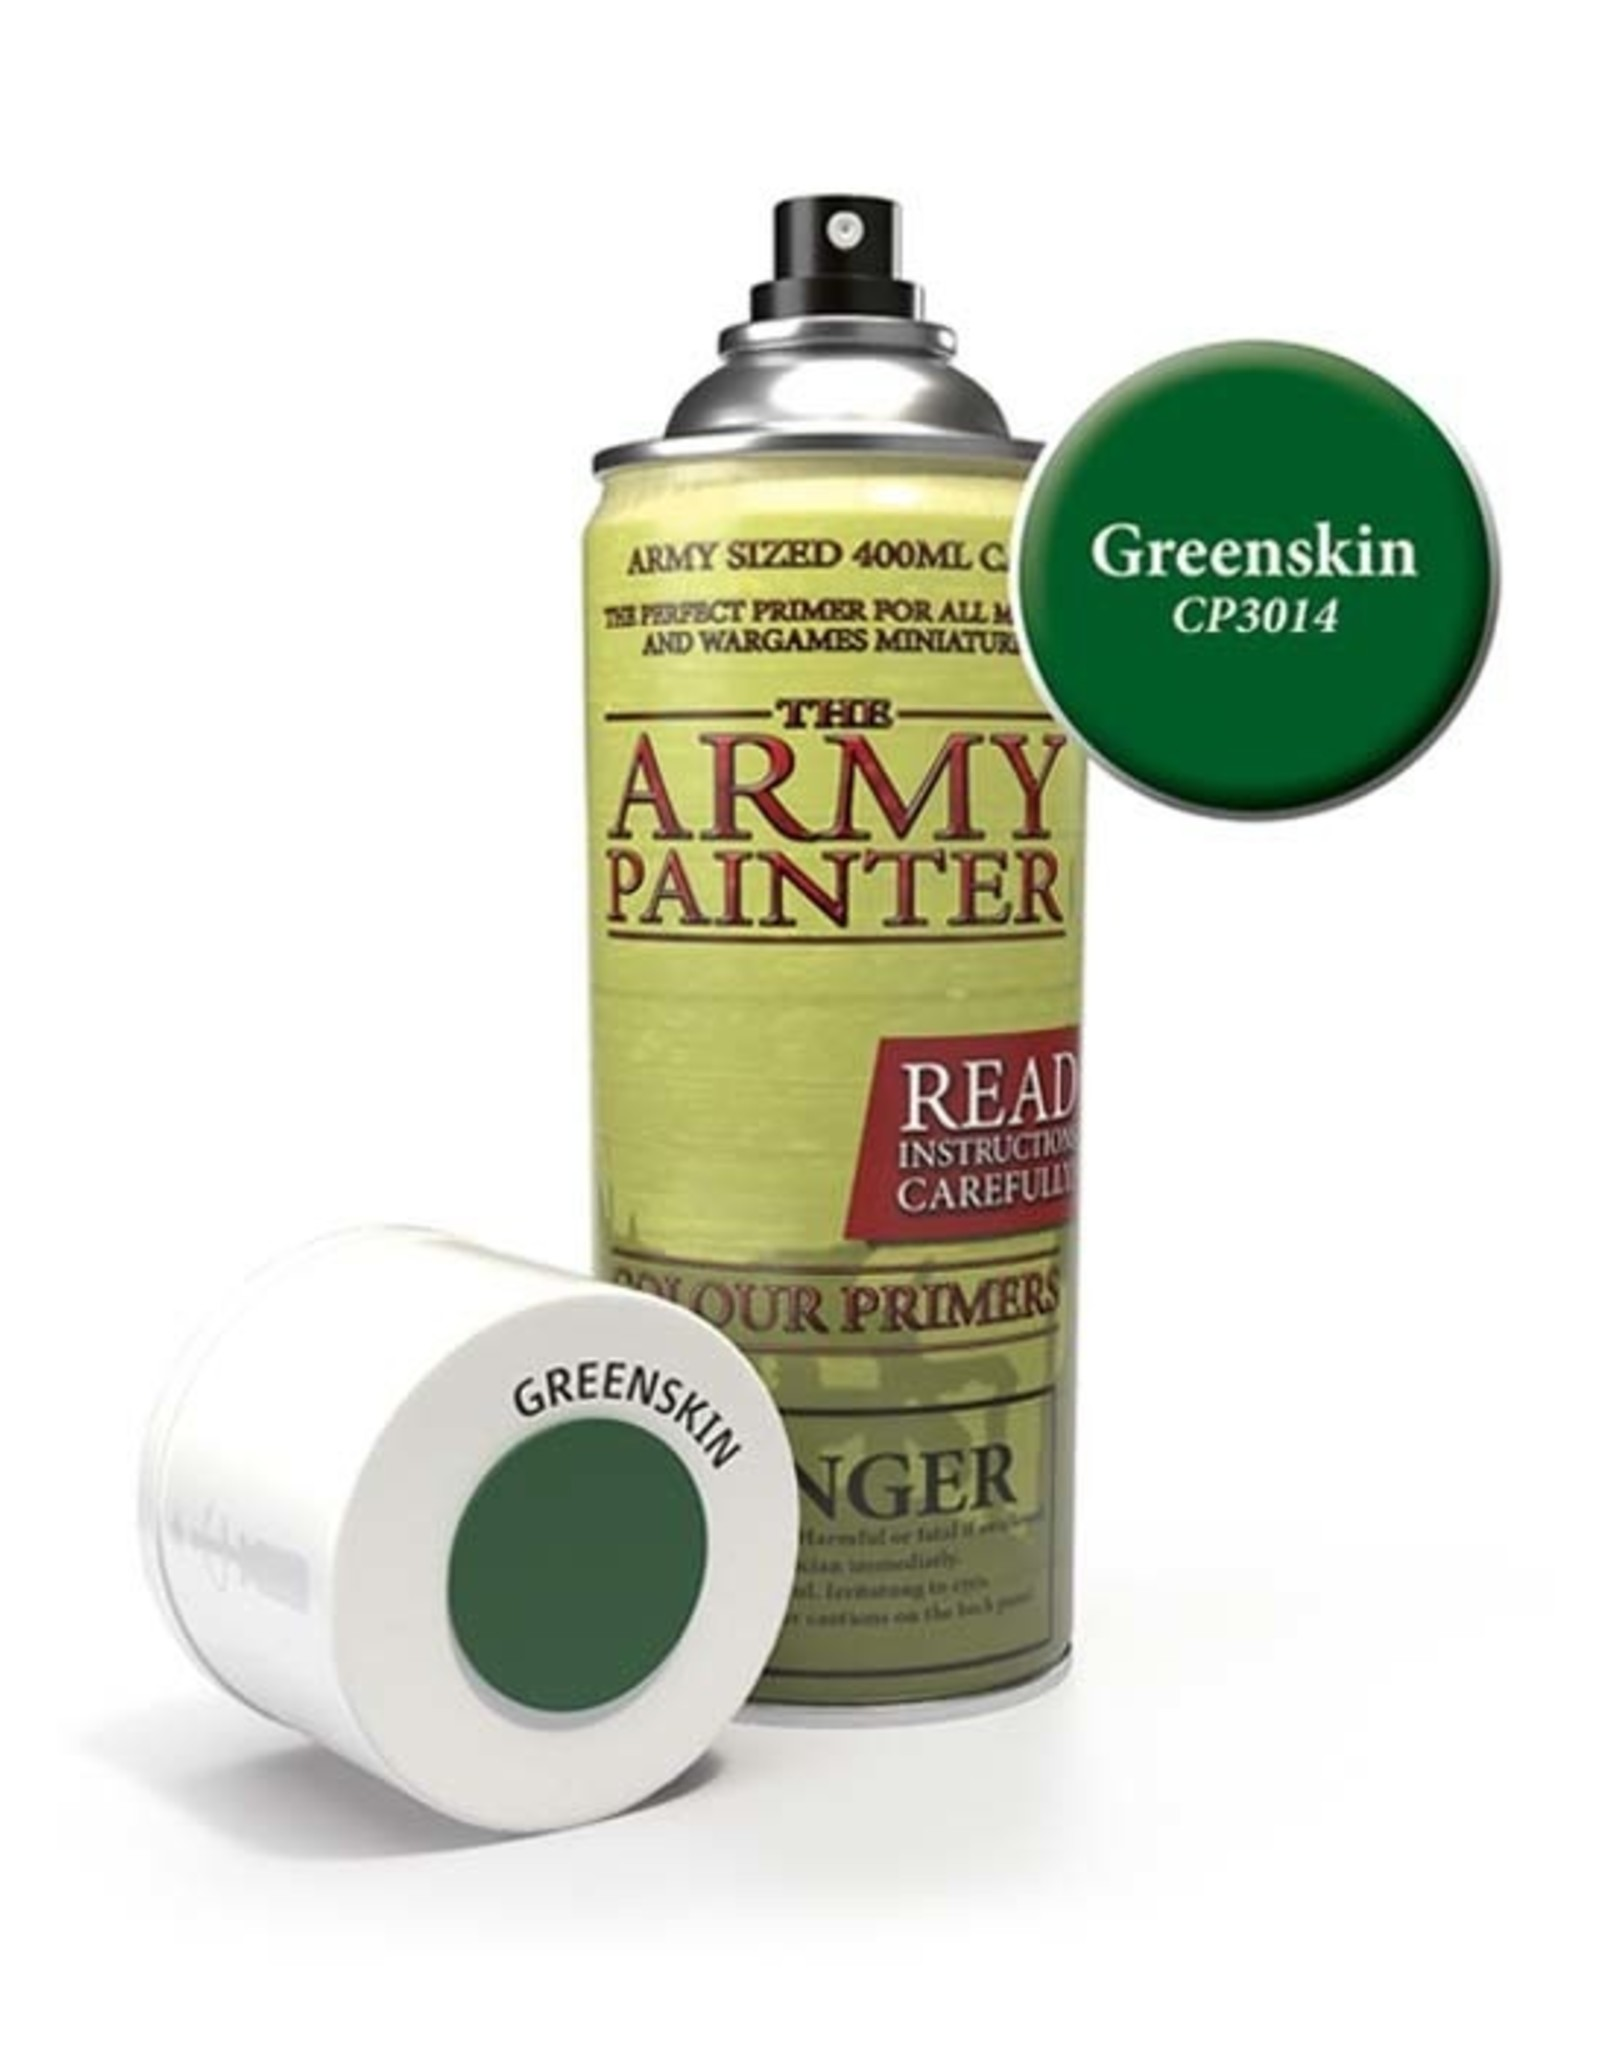 The Army Painter Army Painter: Colour Primer - Greenskin